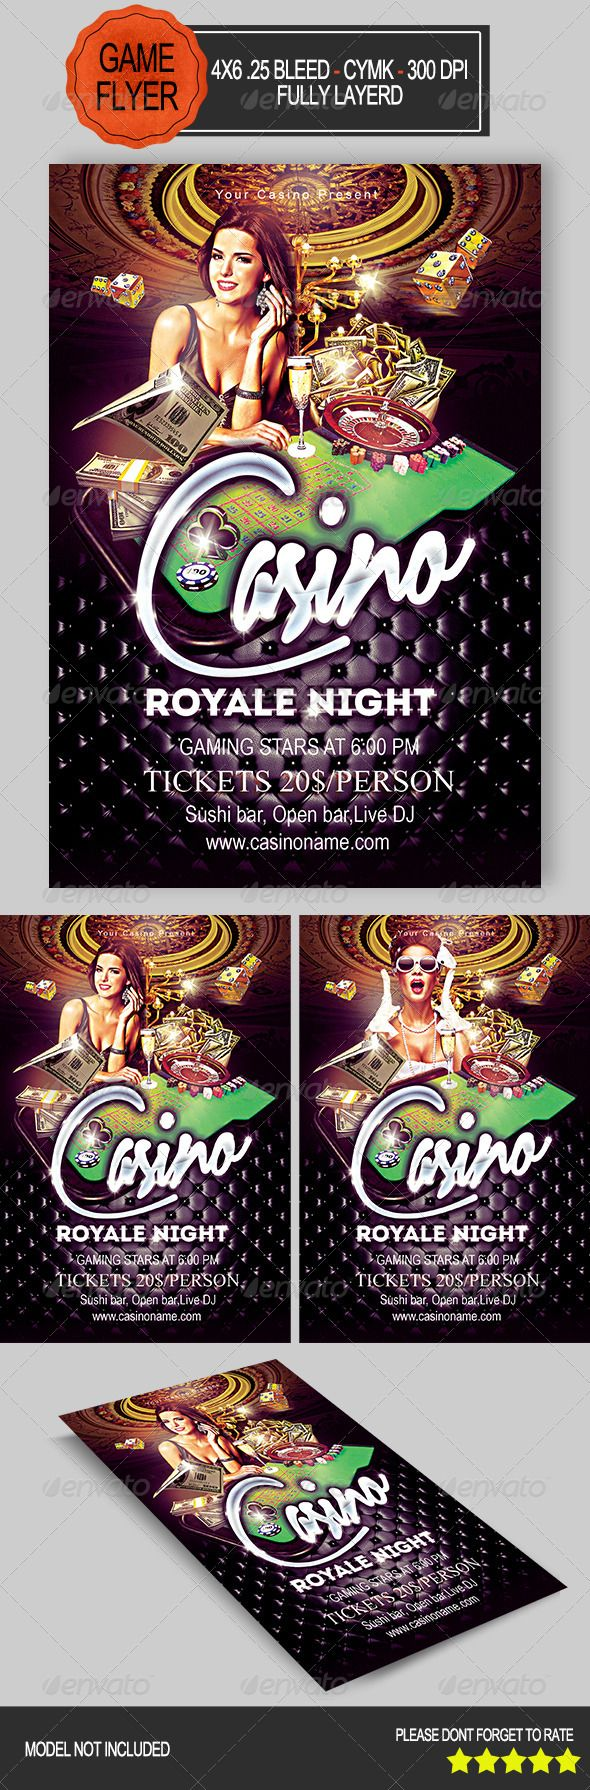 Casino Night Flyer Template PSD | Buy and Download: http://graphicriver.net/item/casino-night-flyer-/8012339?WT.ac=category_thumb&WT.z_author=ionescu_stefania&ref=ksioks